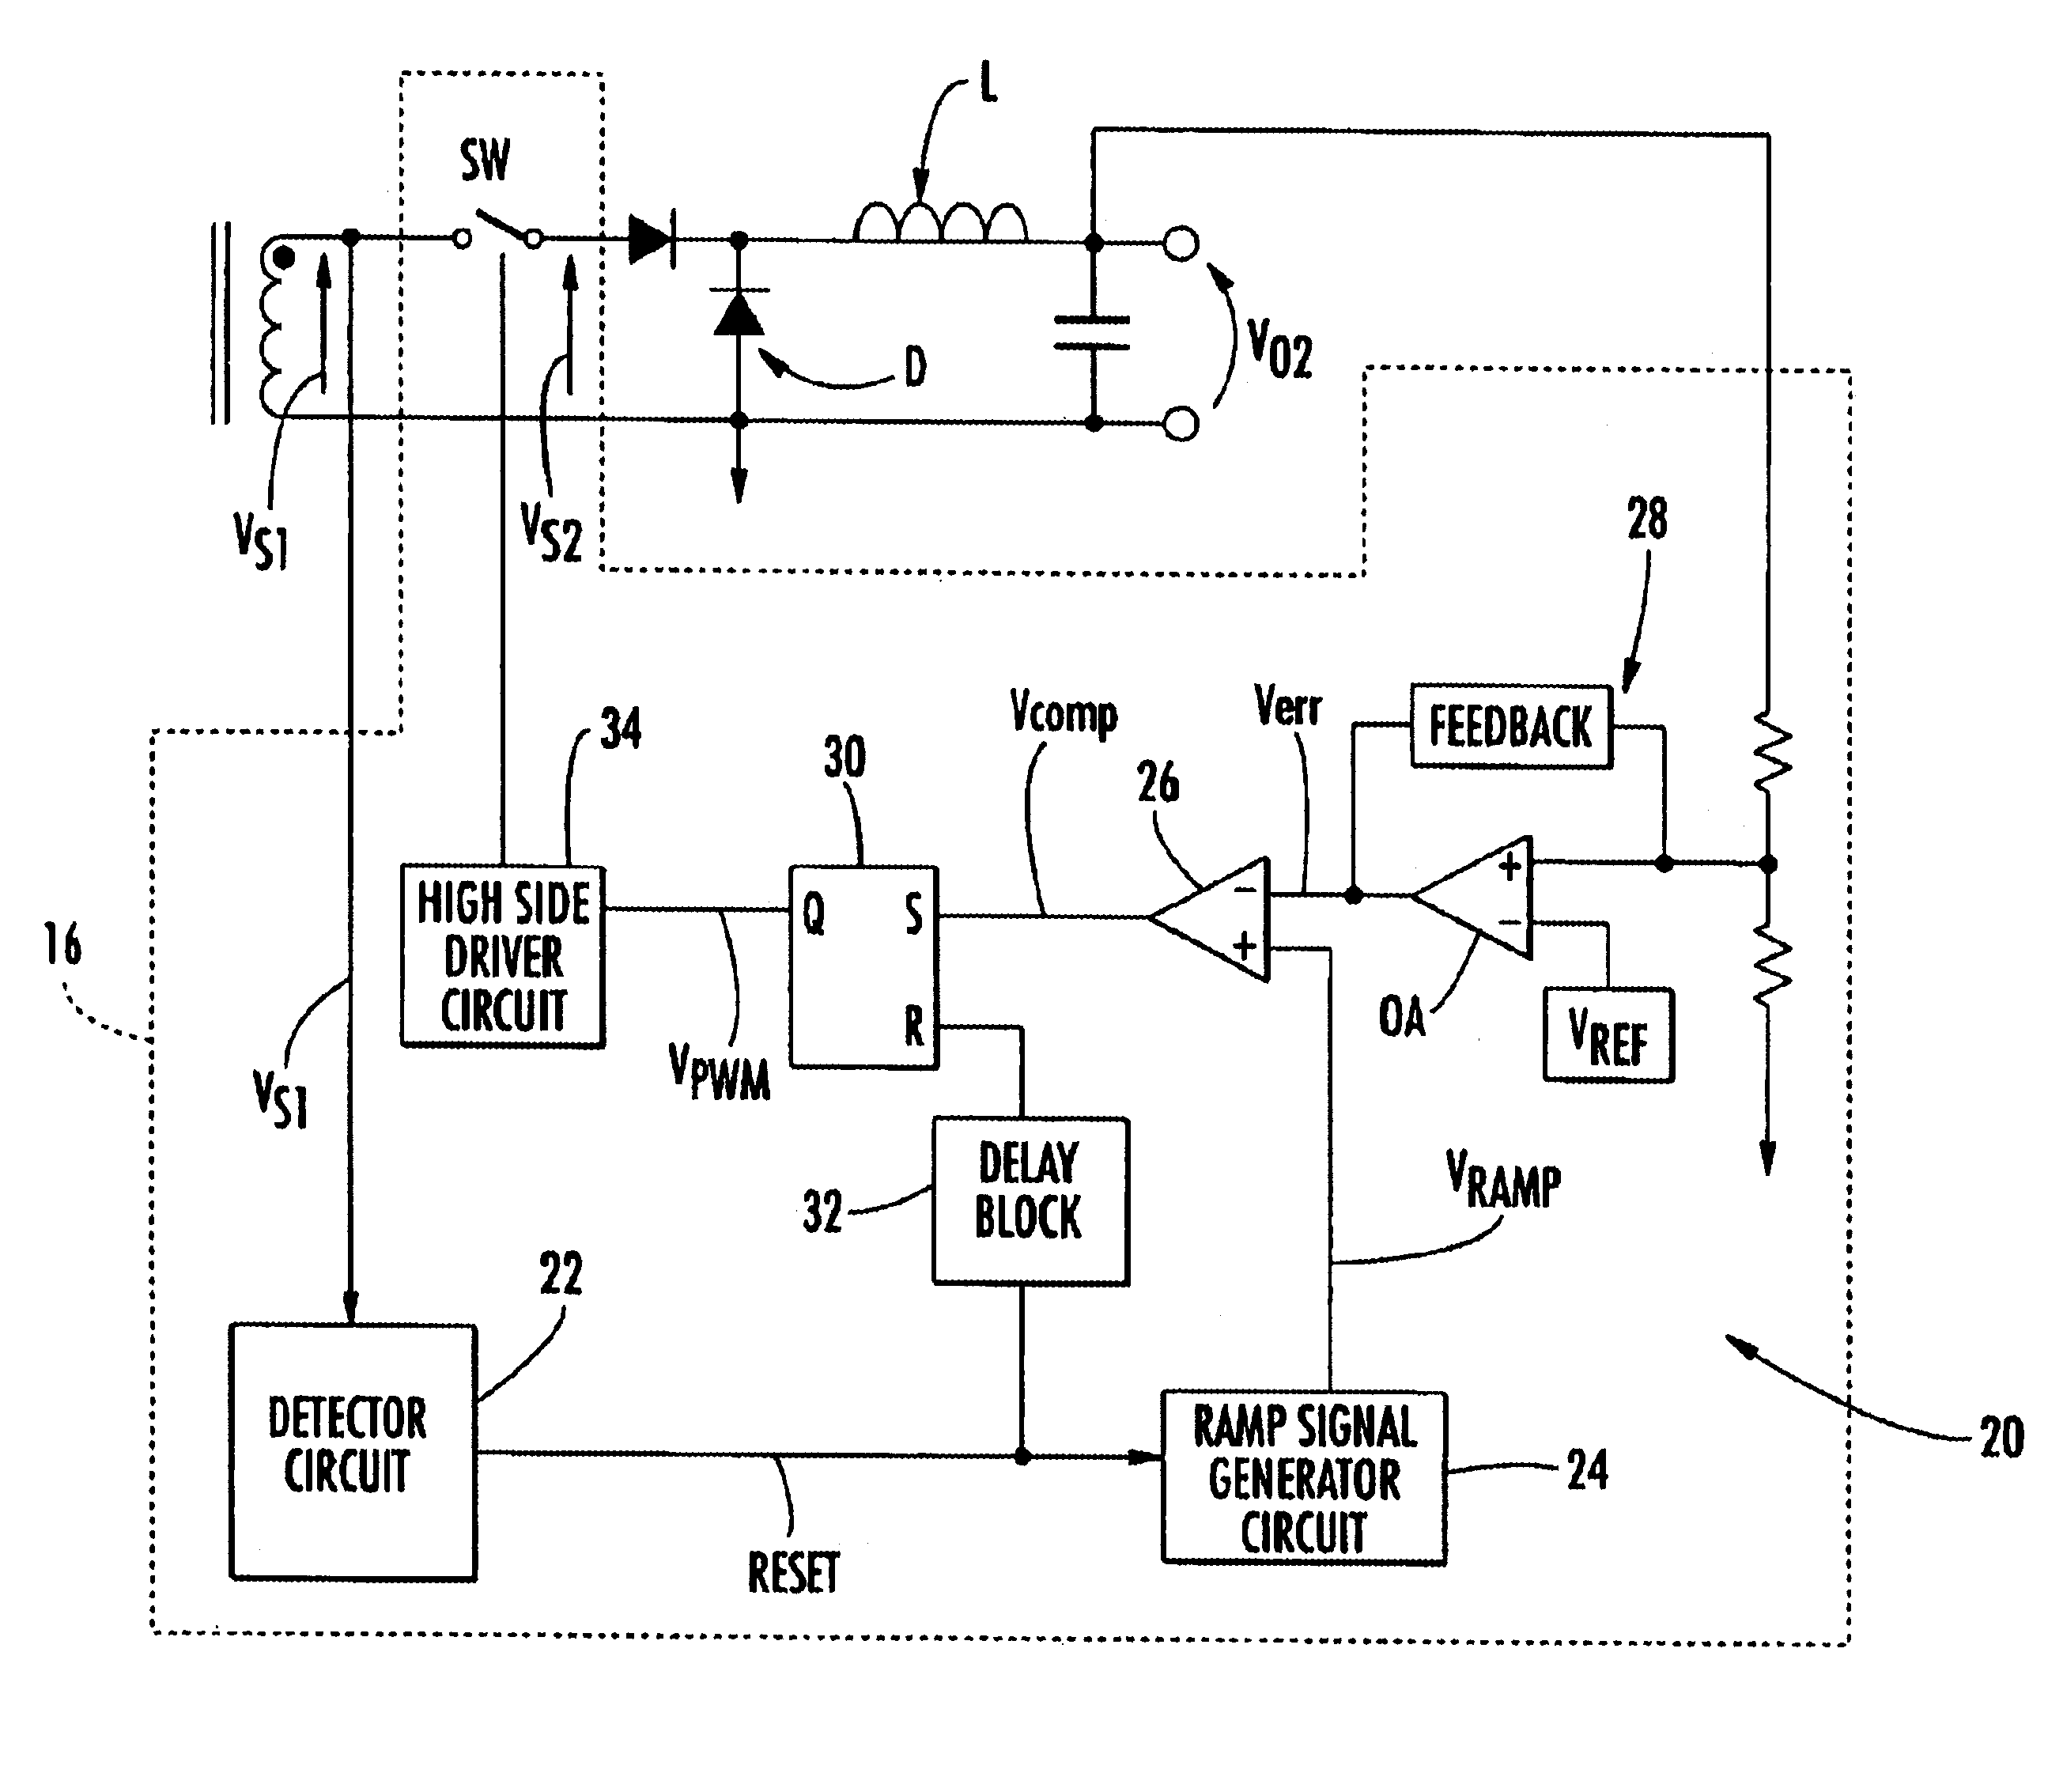 Patent Us6885176 Pwm Control Circuit For The Post Adjustment Of Signal Generator Drawing